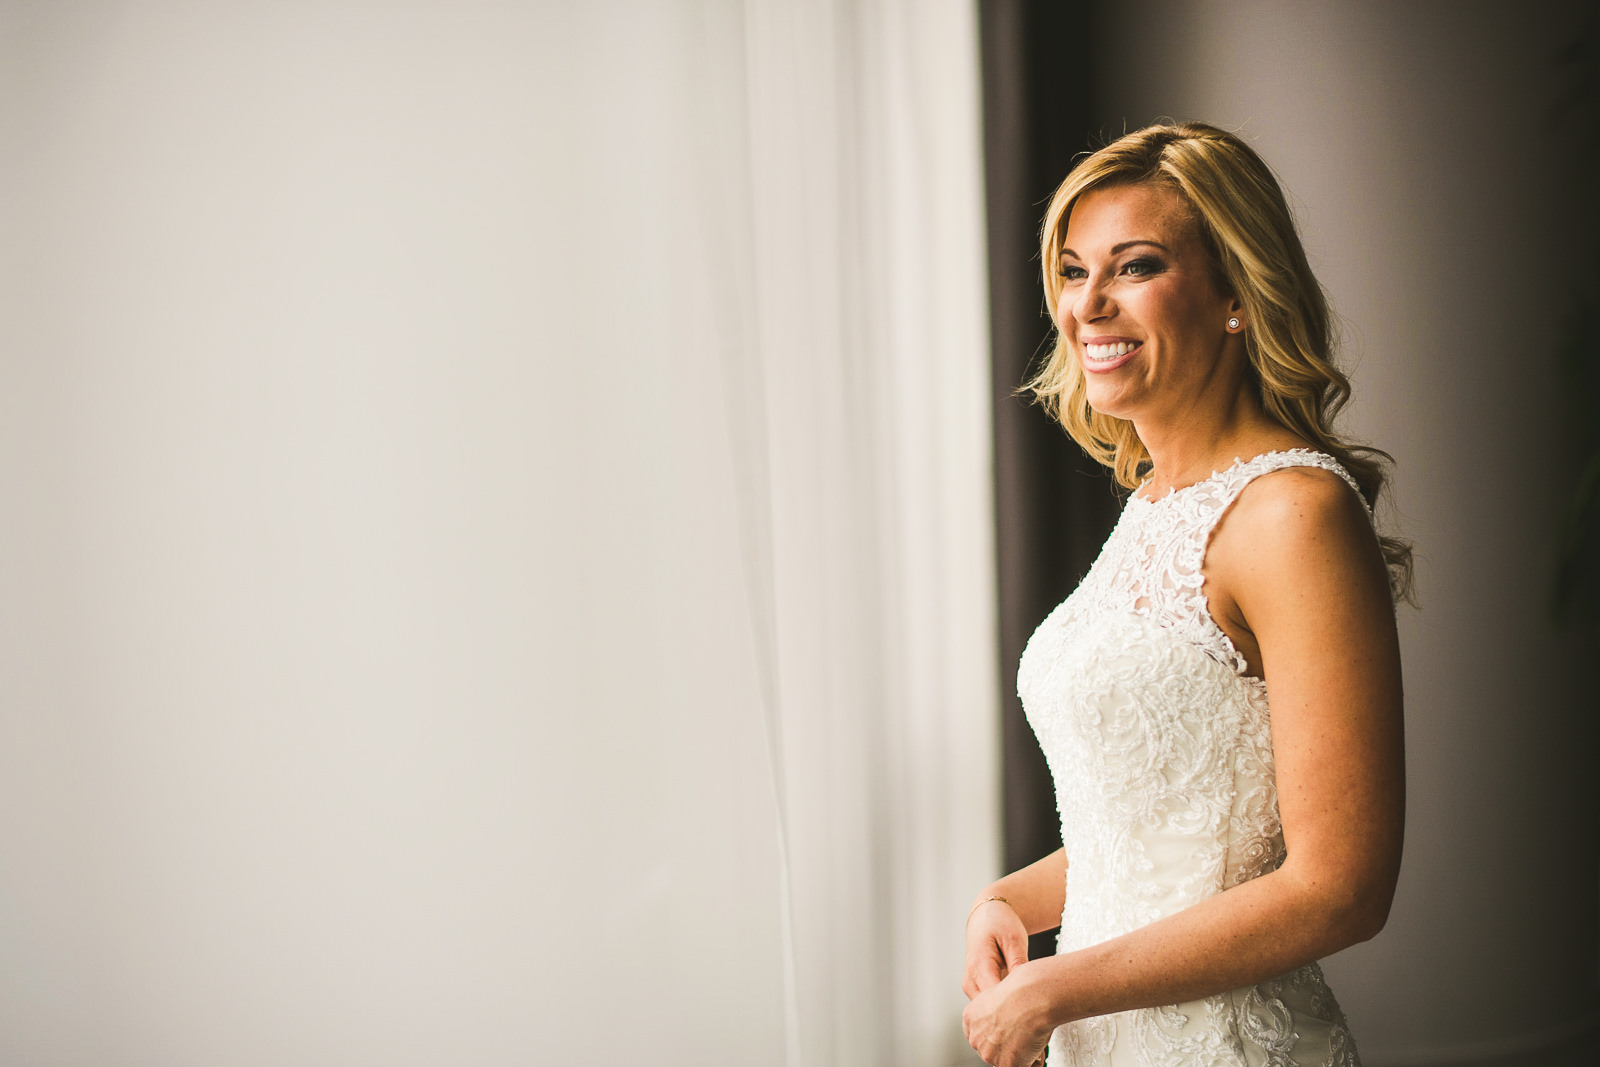 21 bride at wedding photos - Chicago Wedding Photography at Gallery 1028 // Courtnie + David